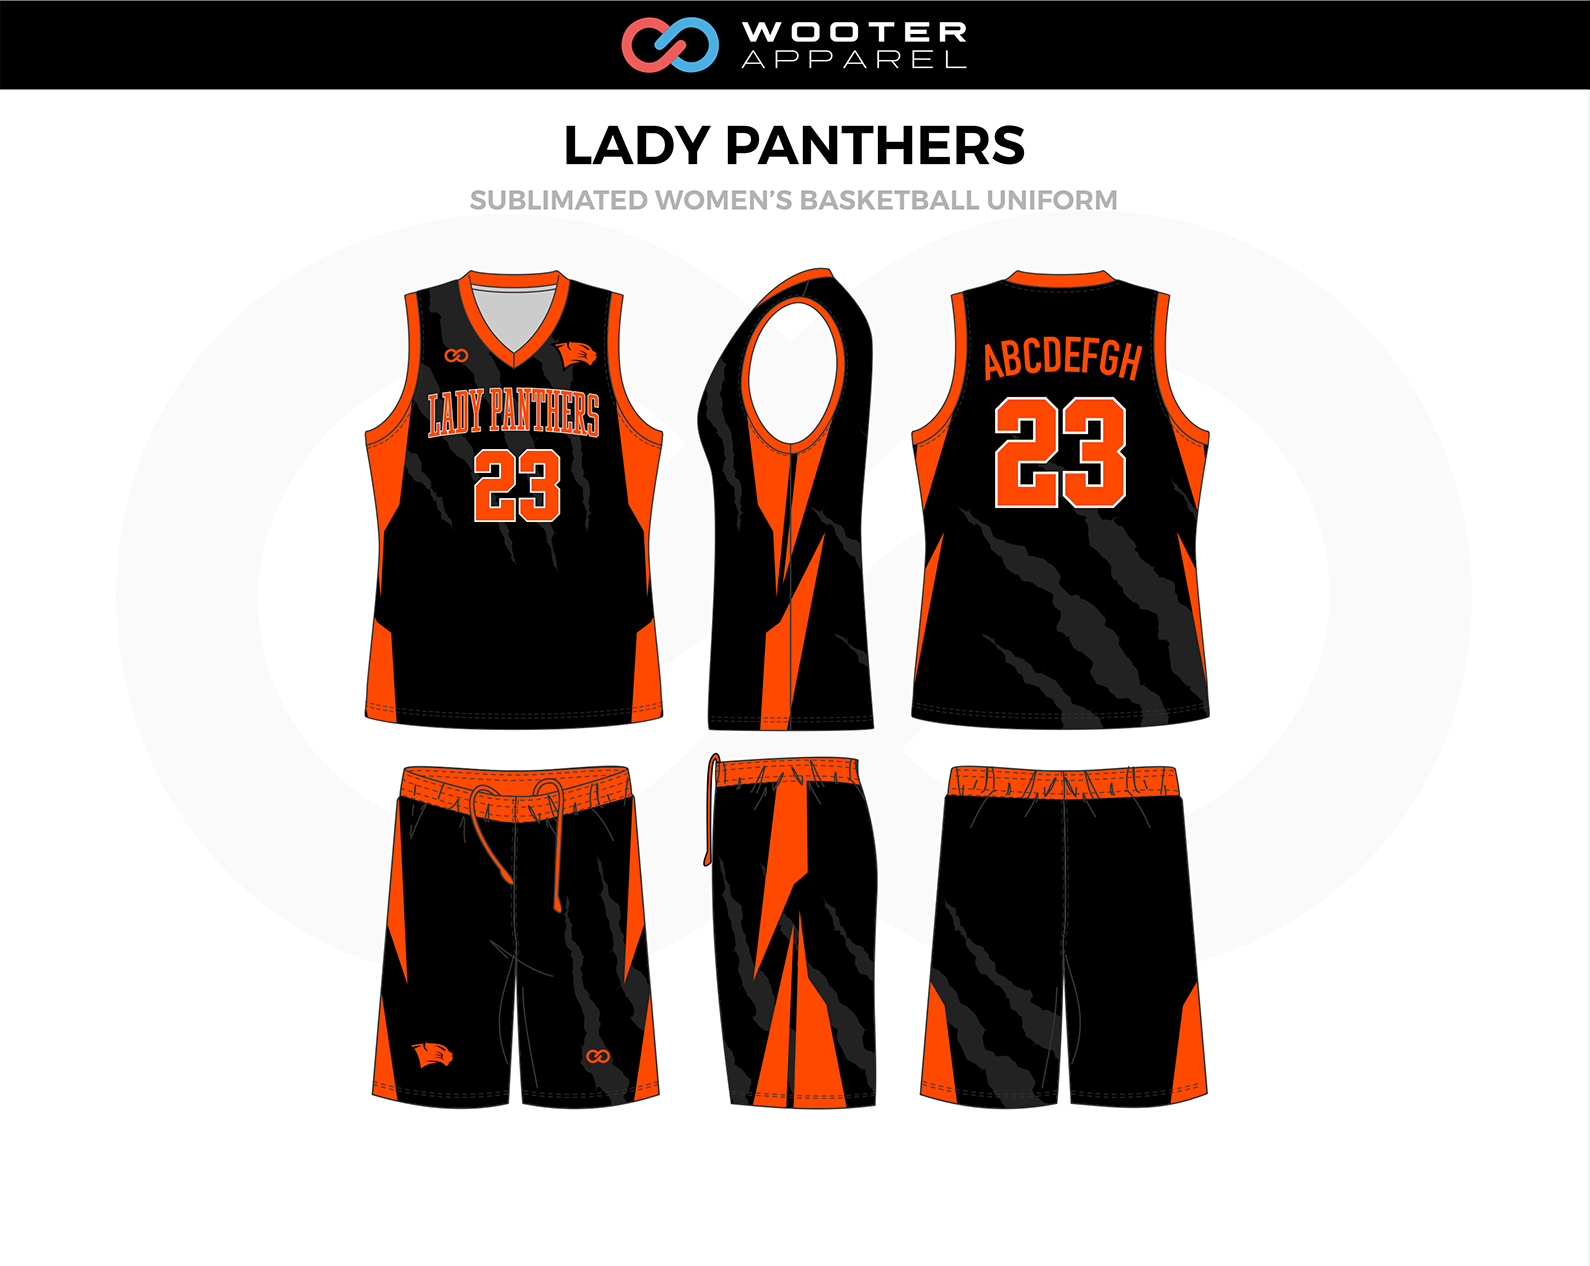 02_Lady Panthers Basketball.png